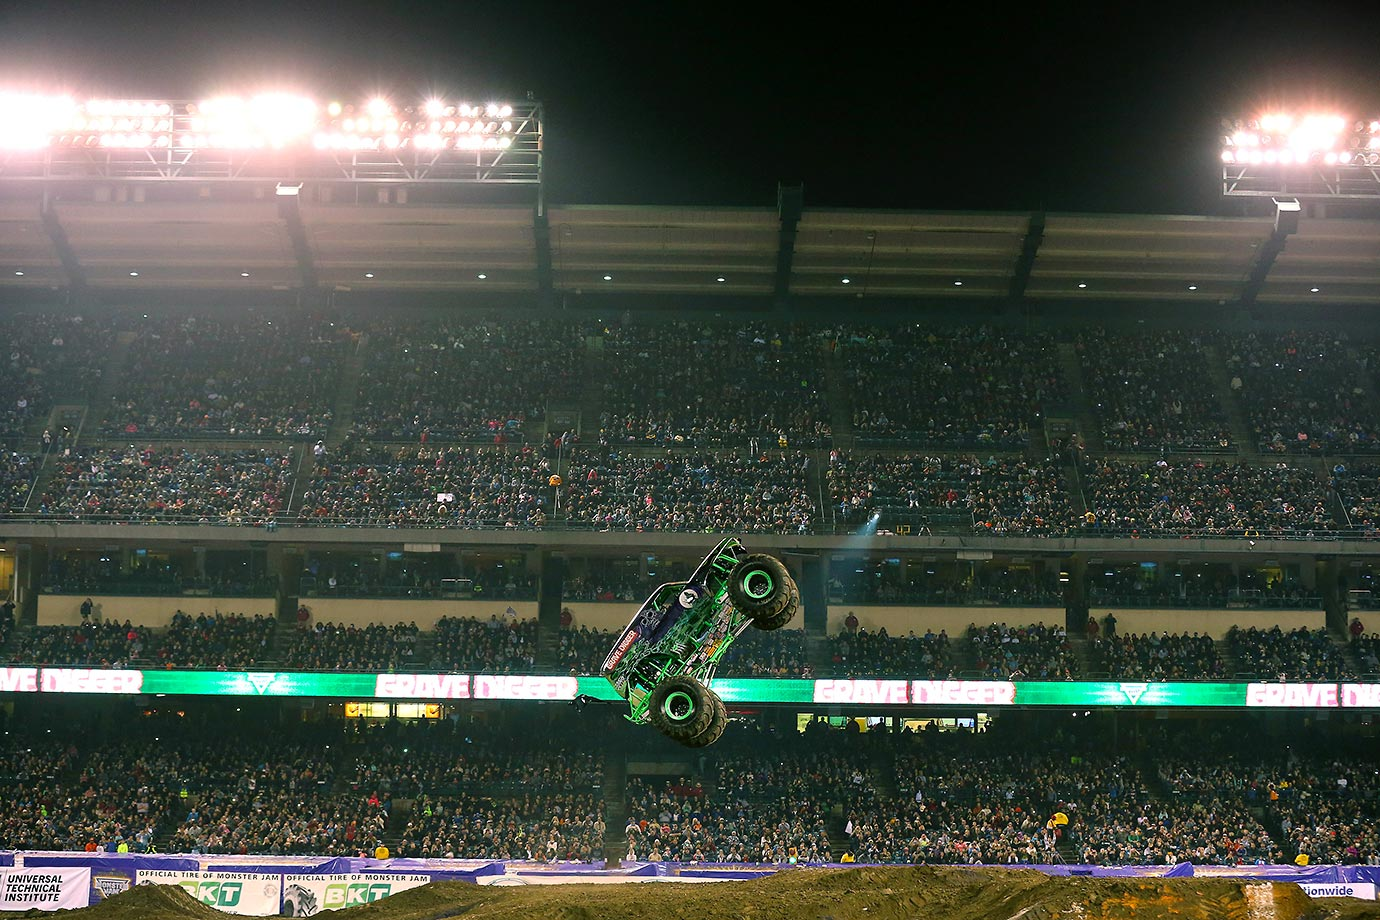 Grave Digger, with Dennis Anderson driving, gets some big air time.